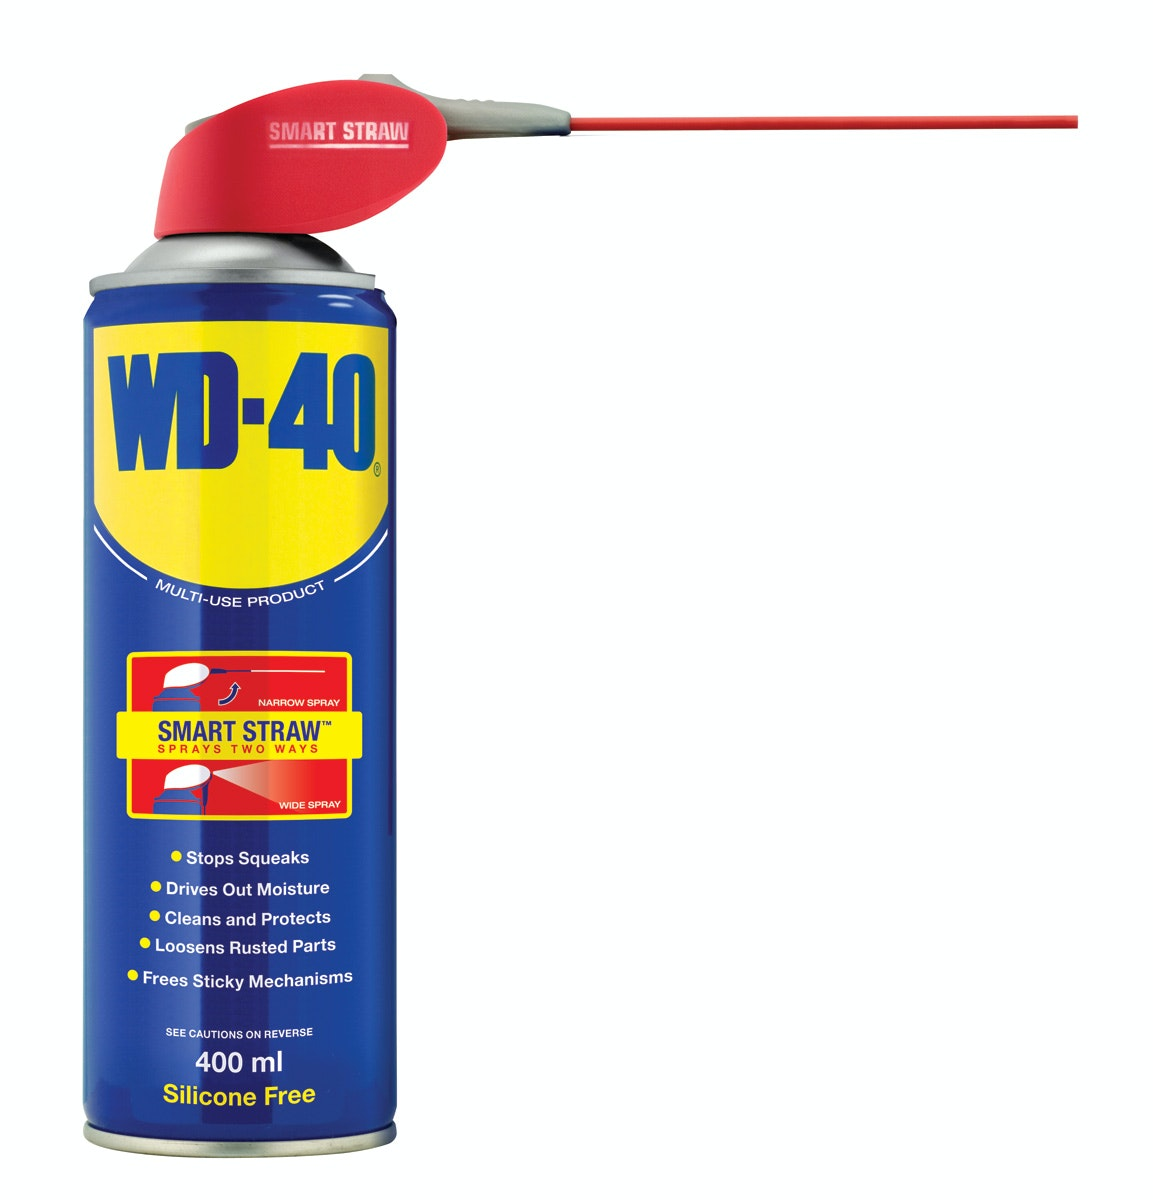 WD40 sweepstakes